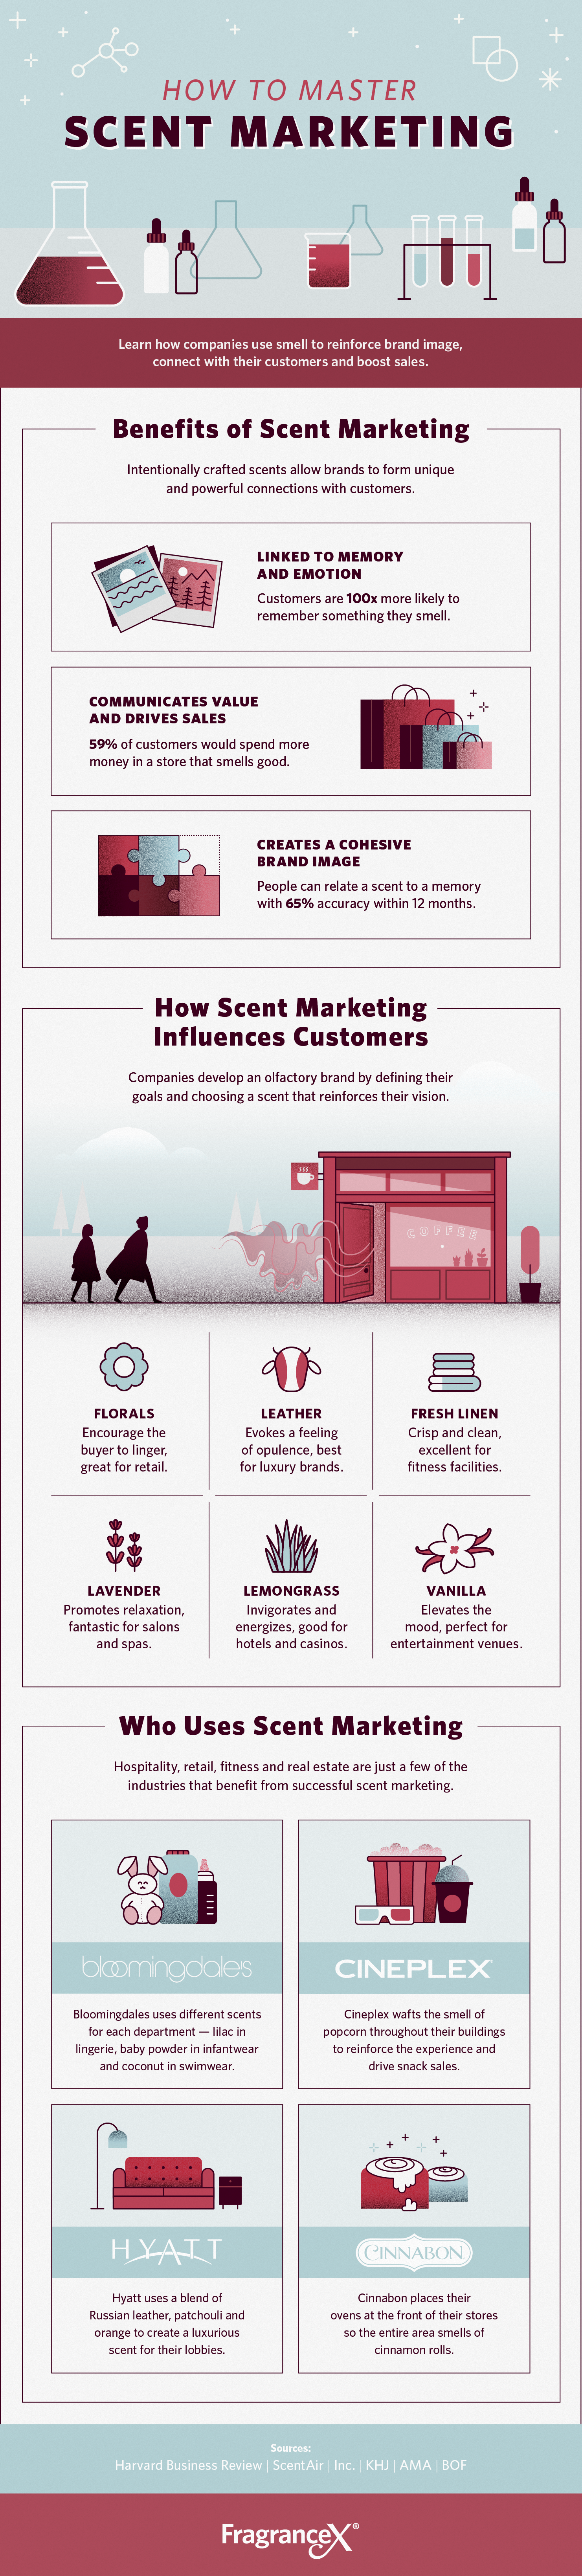 the-science-of-scent-marketing-shareable